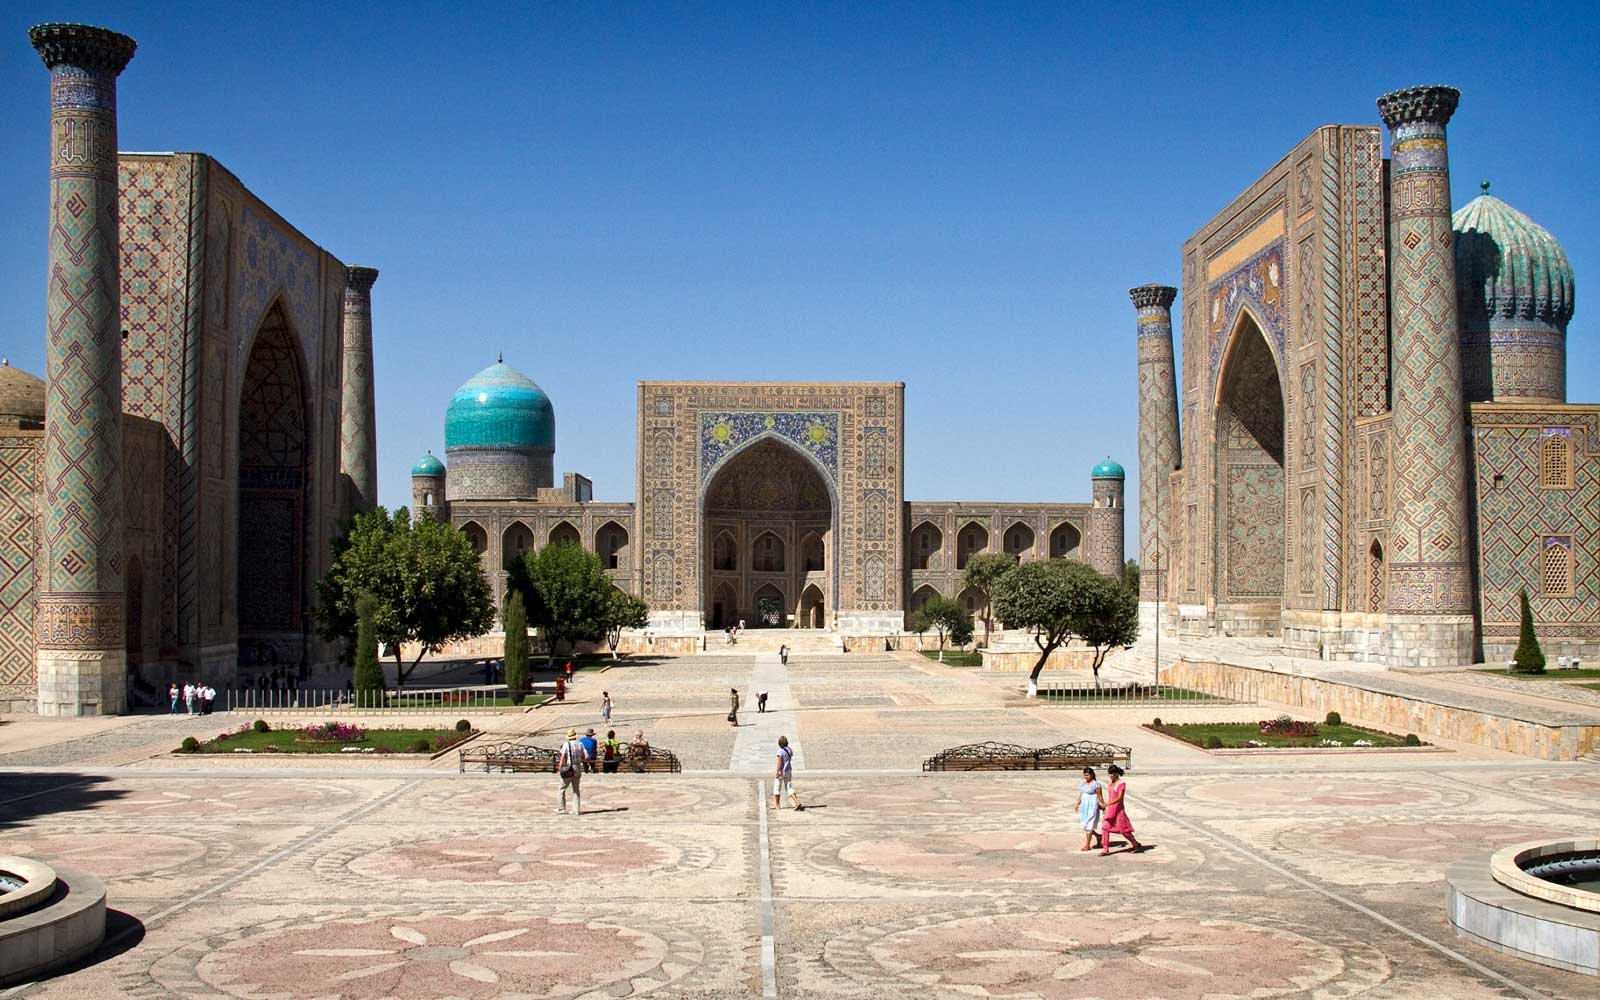 Registrar buildings in Samarkand, Uzbekistan